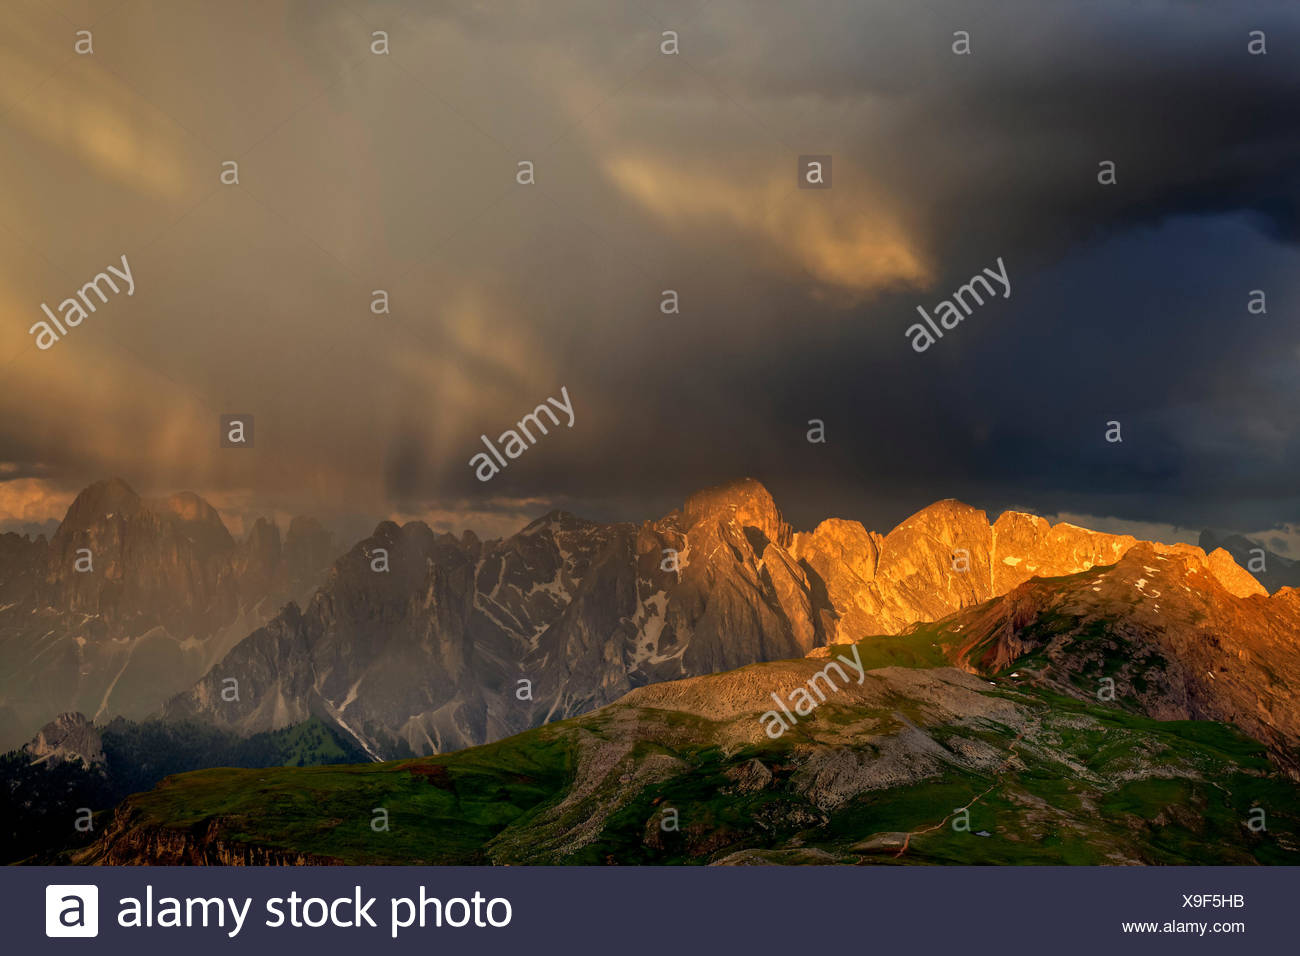 Italy, region Trentino South Tirol, province Bolzano, the Dolomites, to Schlern, thunderstorm about the pert electrolytic capacitor gel, rose garden point, rose garden massif - Stock Image